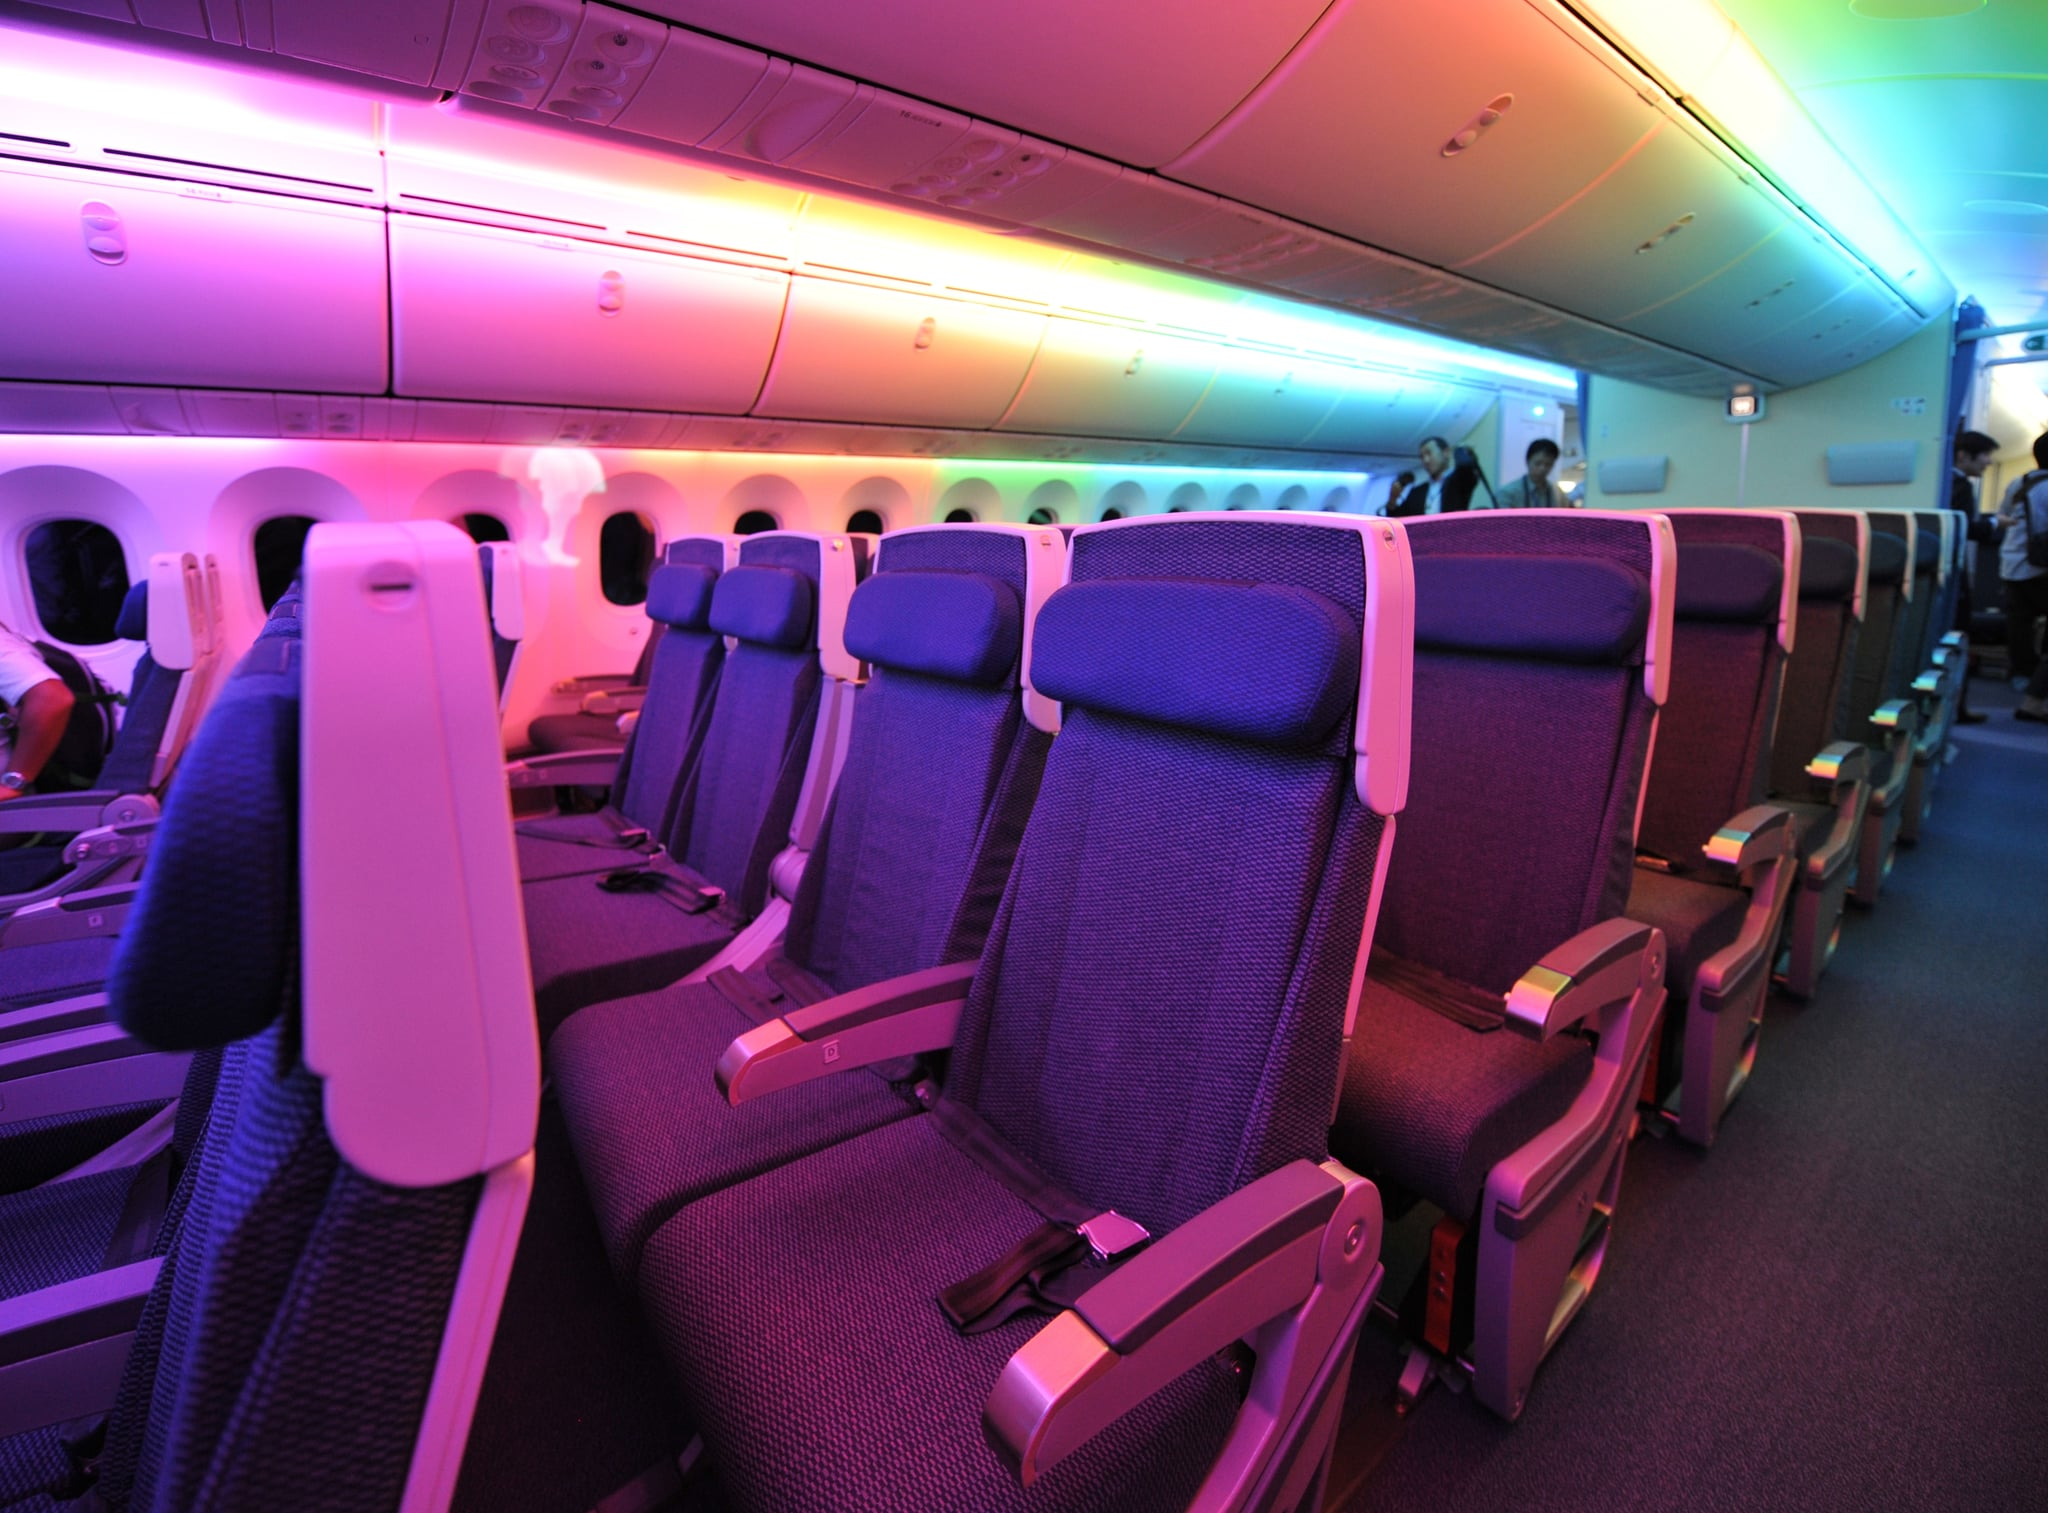 Judge orders FAA to consider whether seat size influences safety